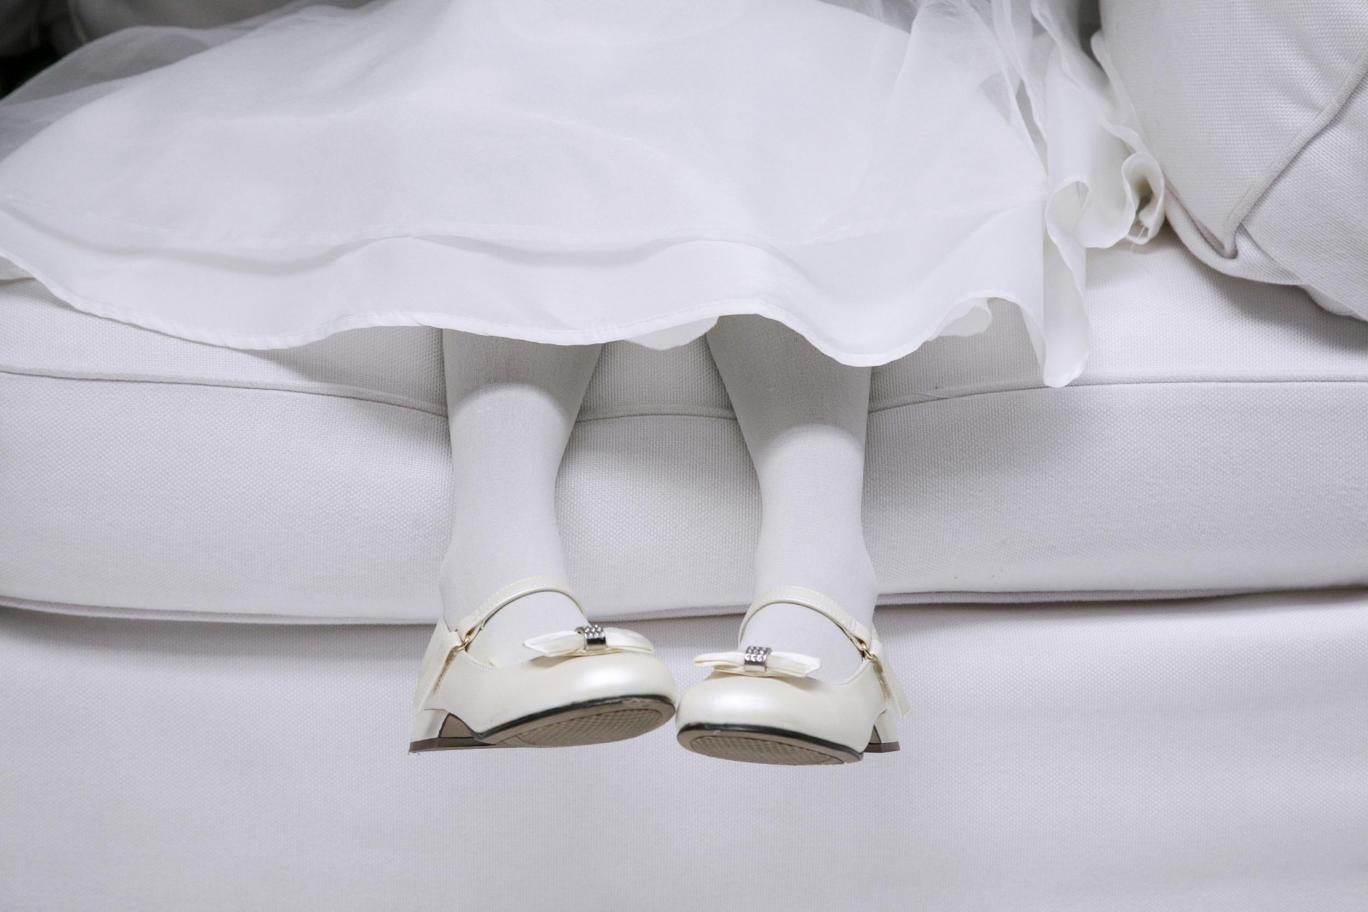 11 Year-Old Girl 'Forced To Marry Her Rapist'